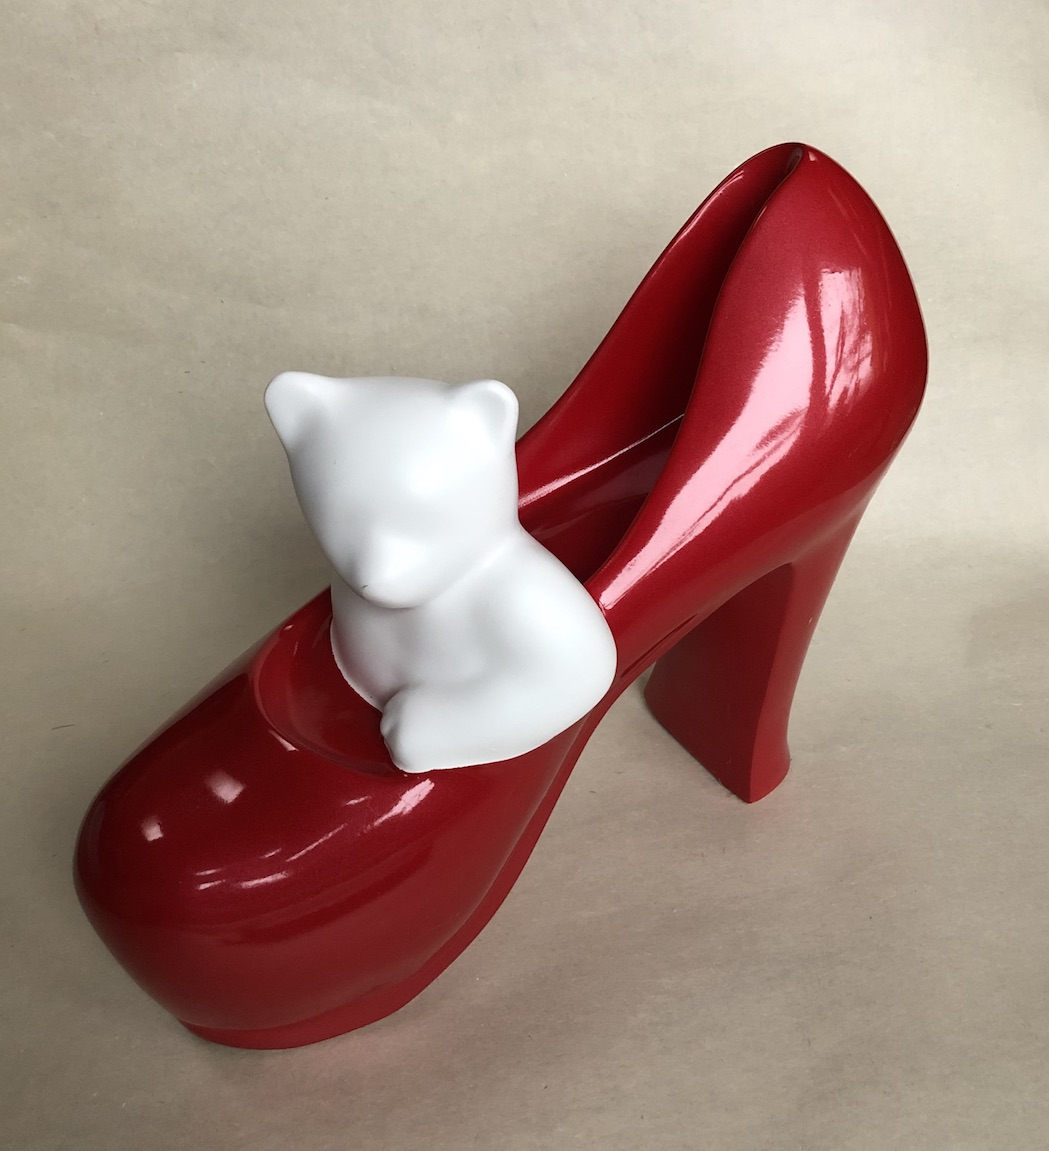 TW 335A Panda In Red Shoe